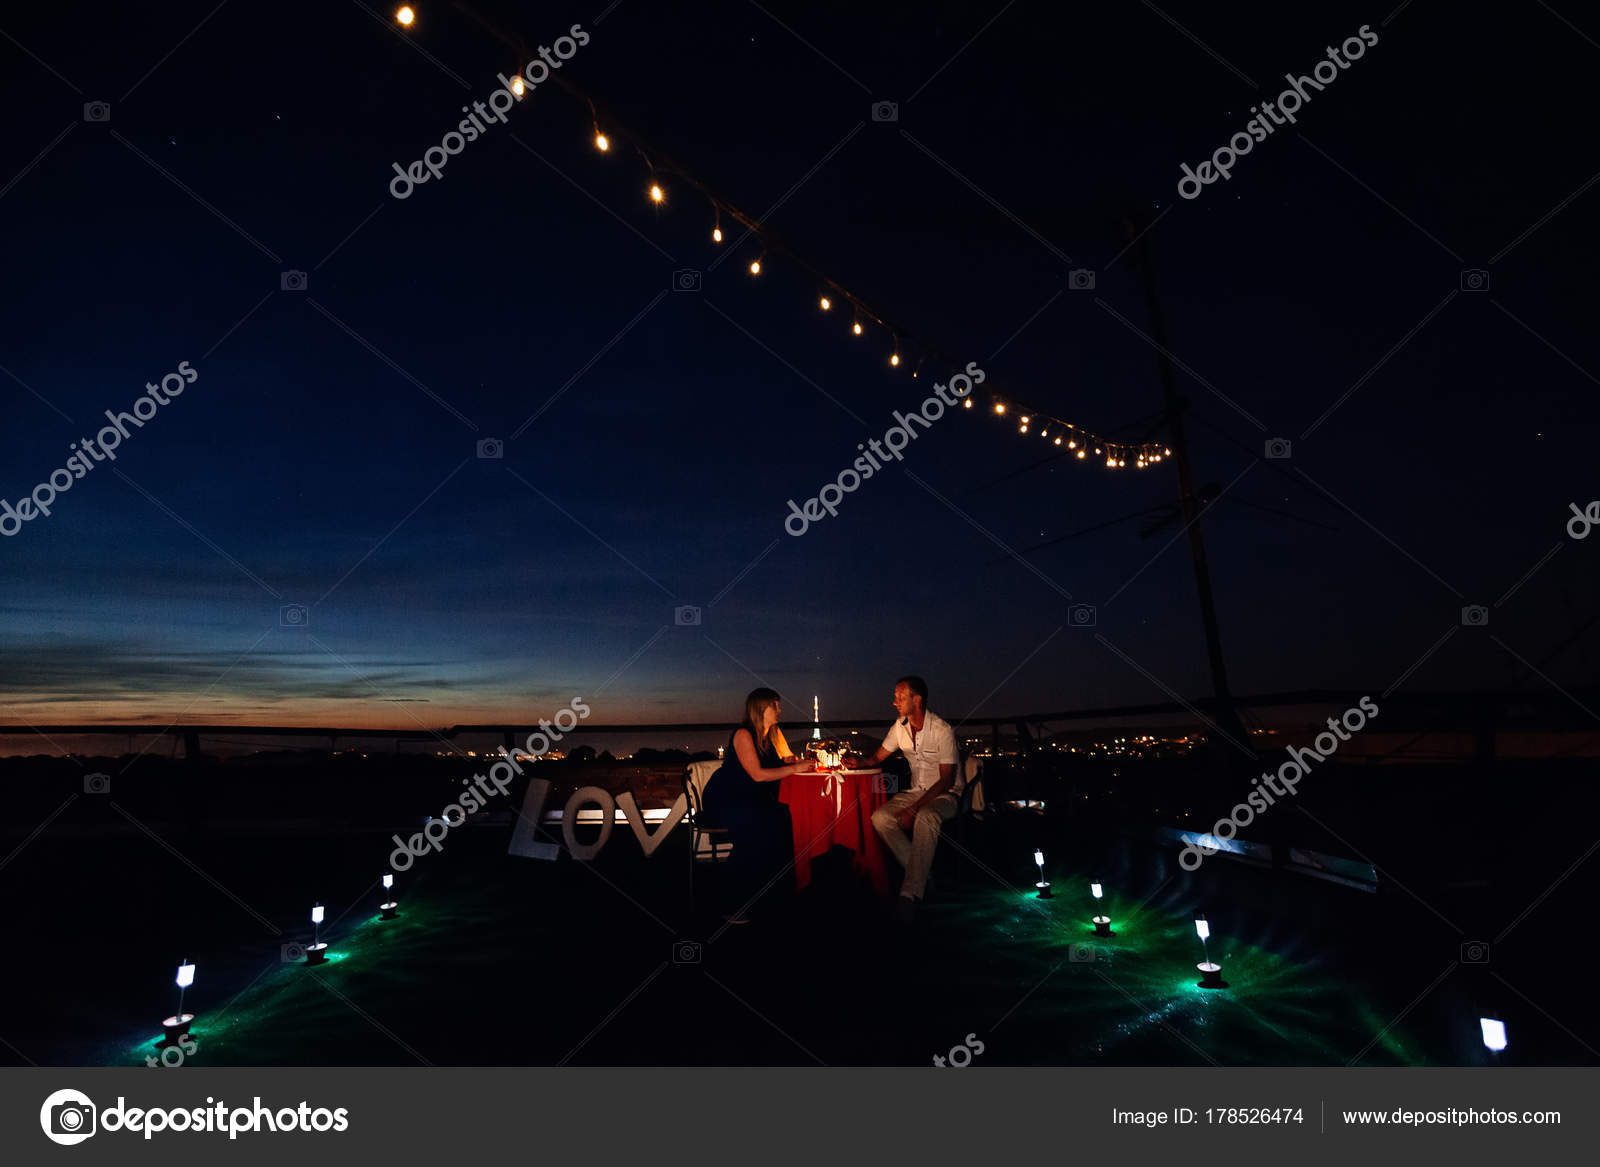 Conversation between two lovers on a romantic date on the